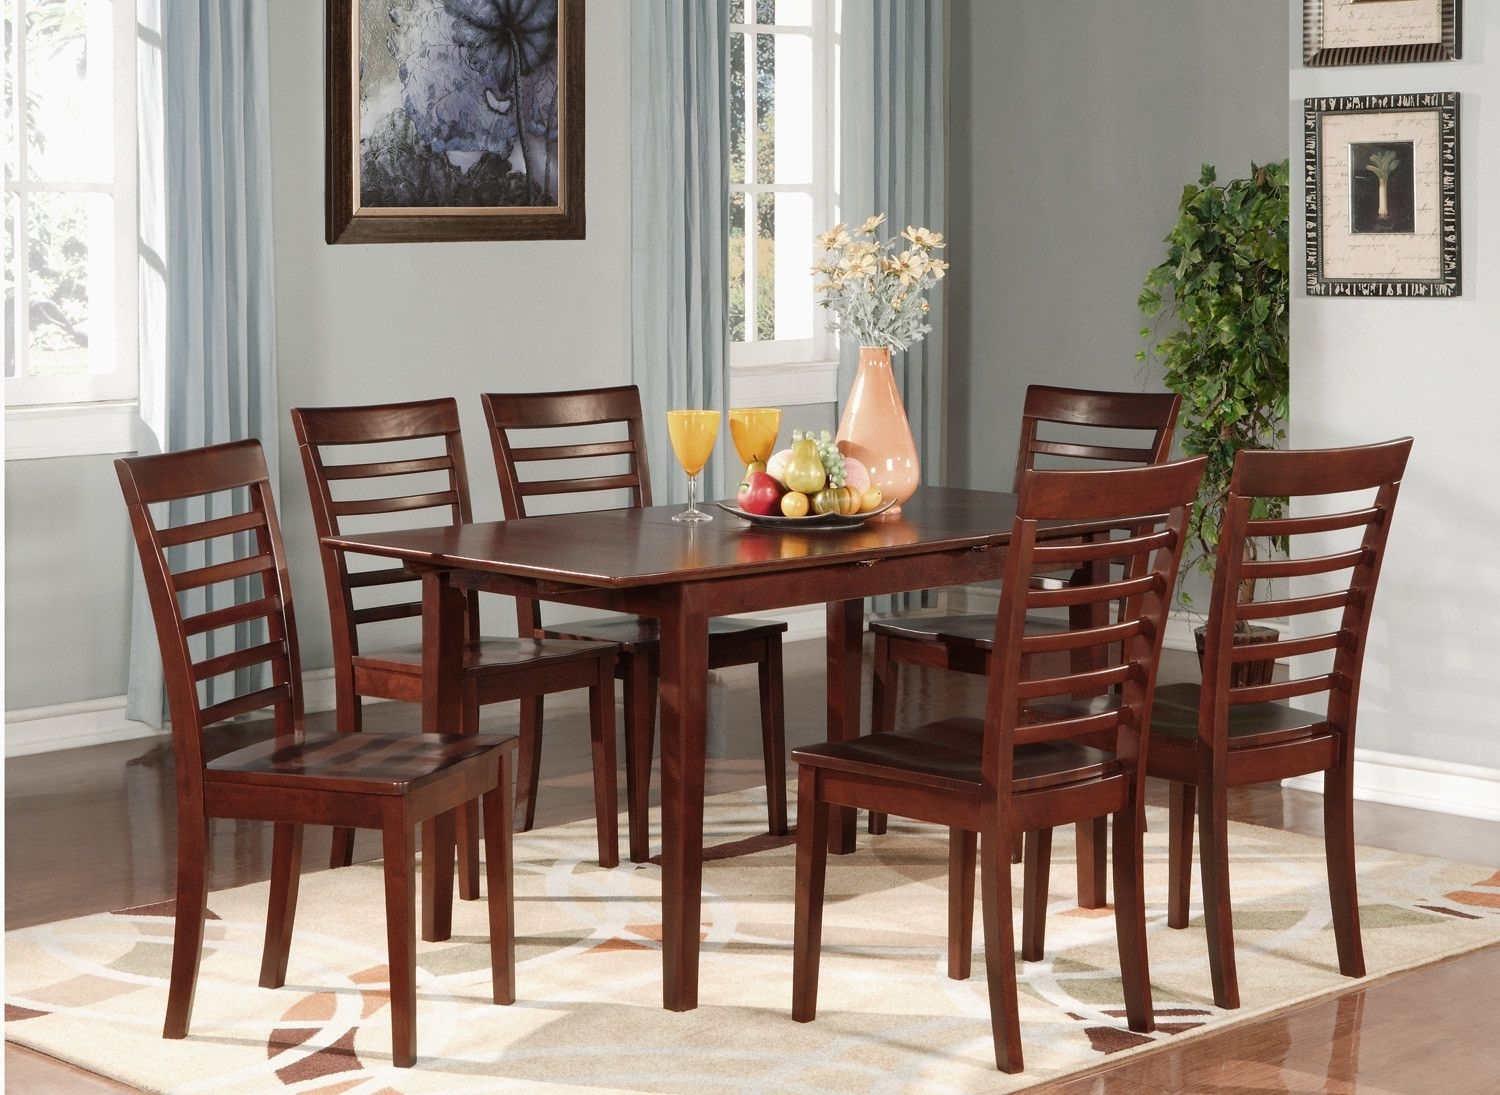 7 Piece Jamia Dining Set | Products | Pinterest | Dining Sets Regarding 2018 Candice Ii 7 Piece Extension Rectangle Dining Sets (Photo 15 of 20)